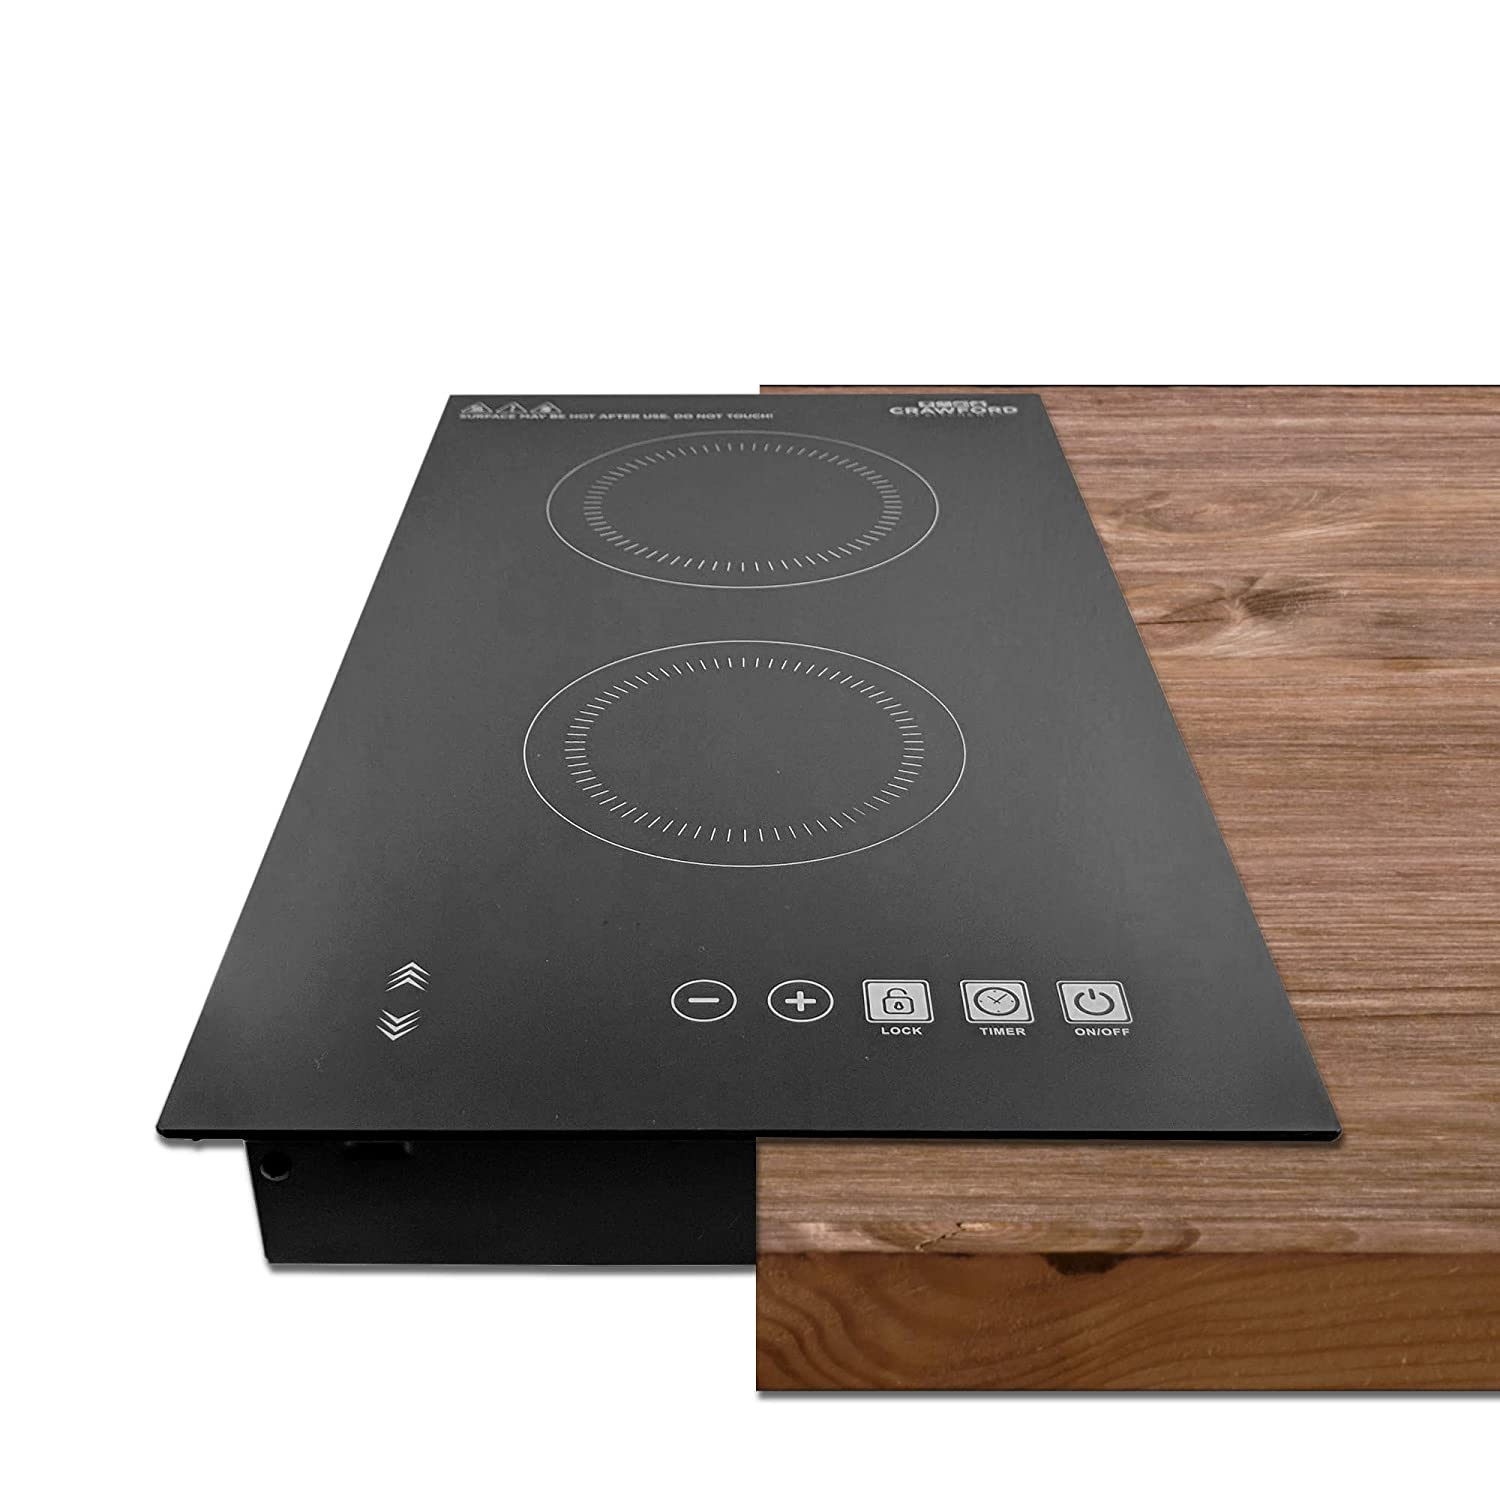 Crawford Kitchen 1800W In-Counter Double Digital Induction Cooktop | Portable Or Built-In Countertop Design | Easy To Clean New Touch Panel Controls (Vertical Double Burner)